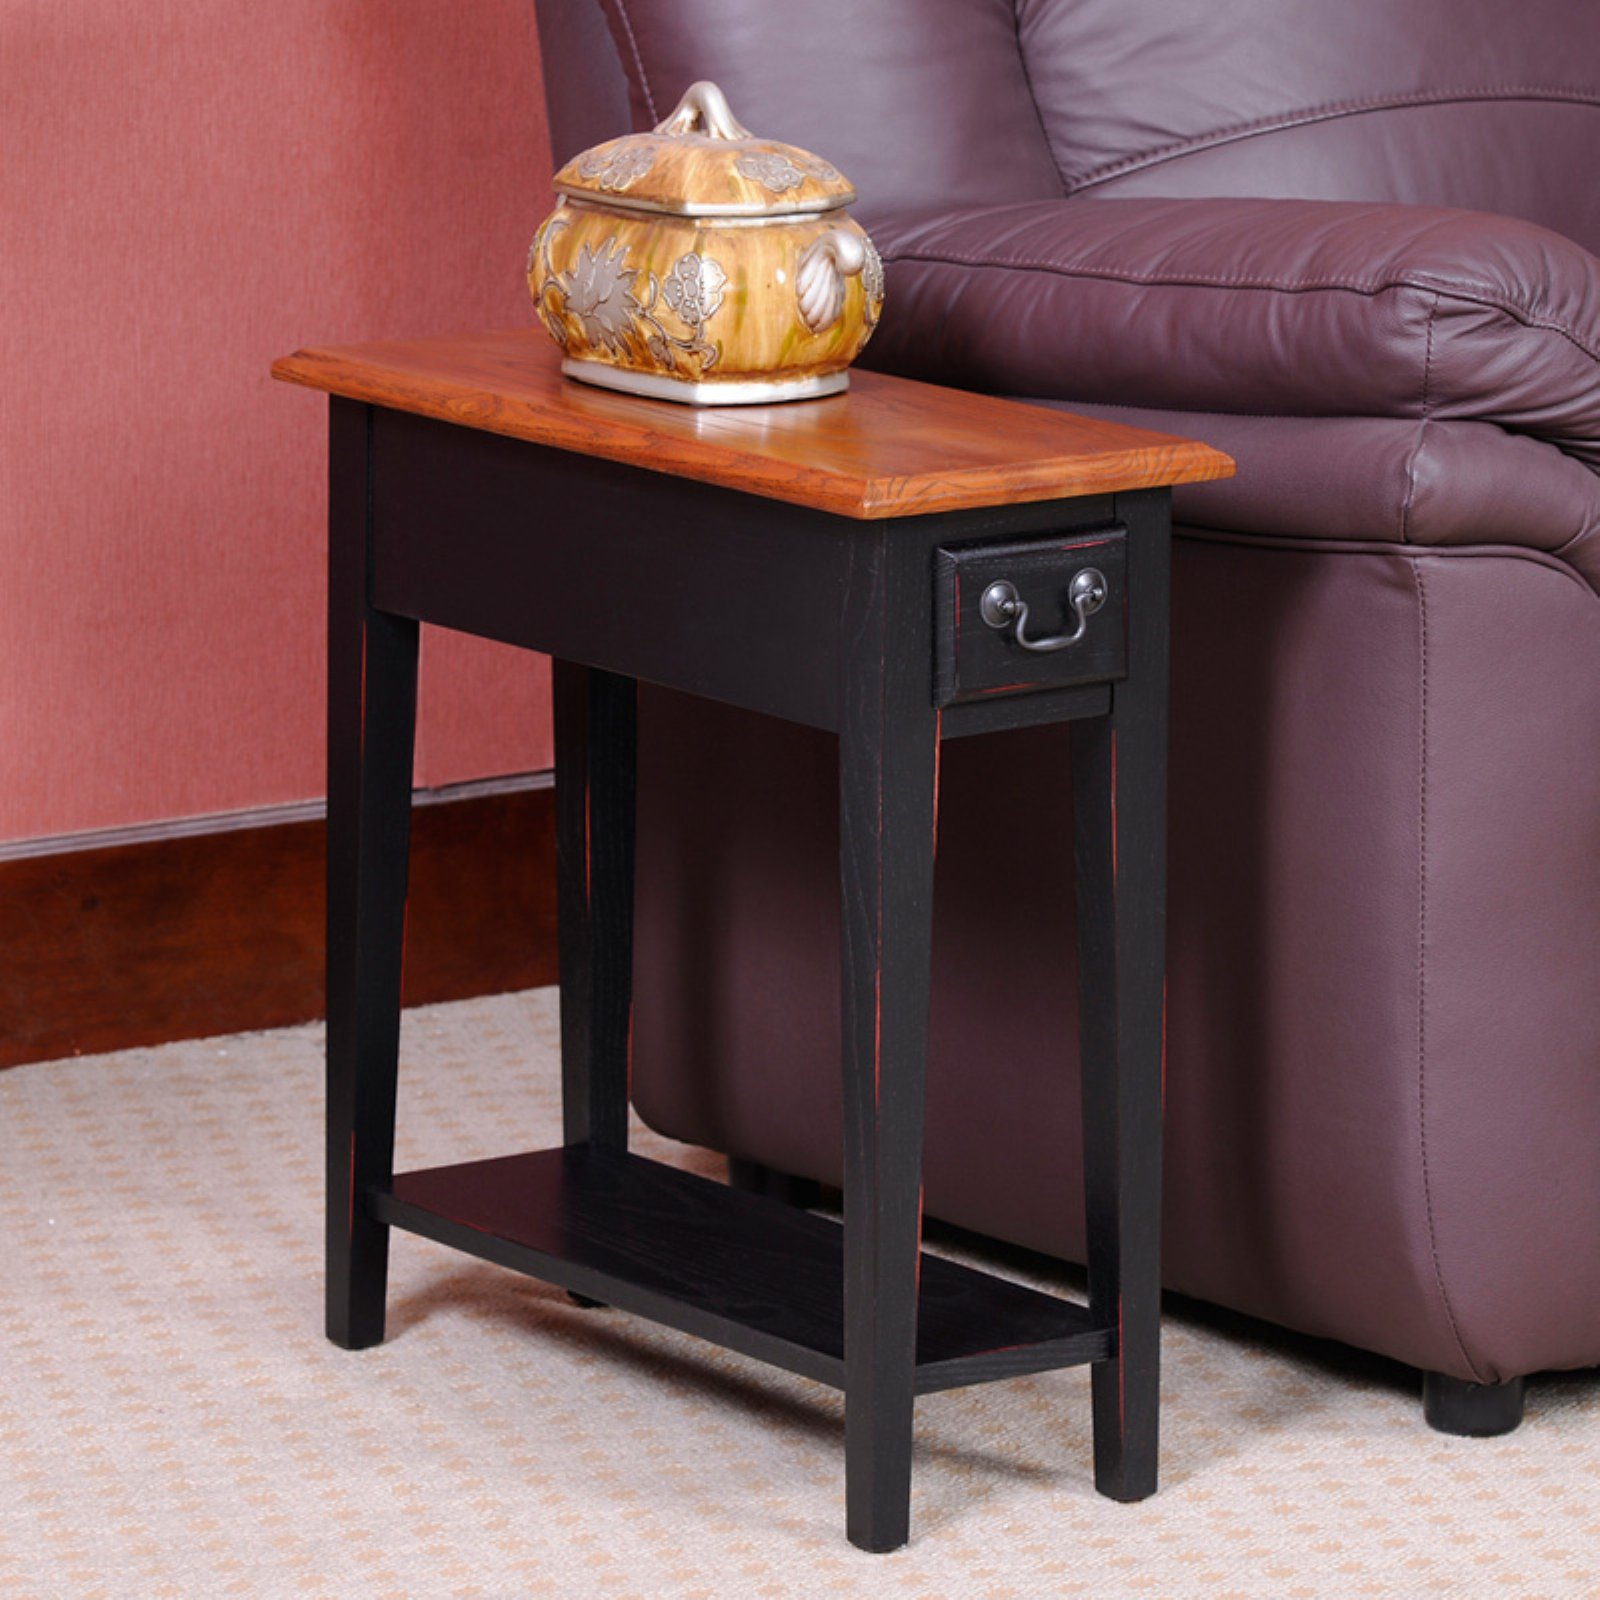 Hardwood 10 Inch Chairside End Table In Black And Oak